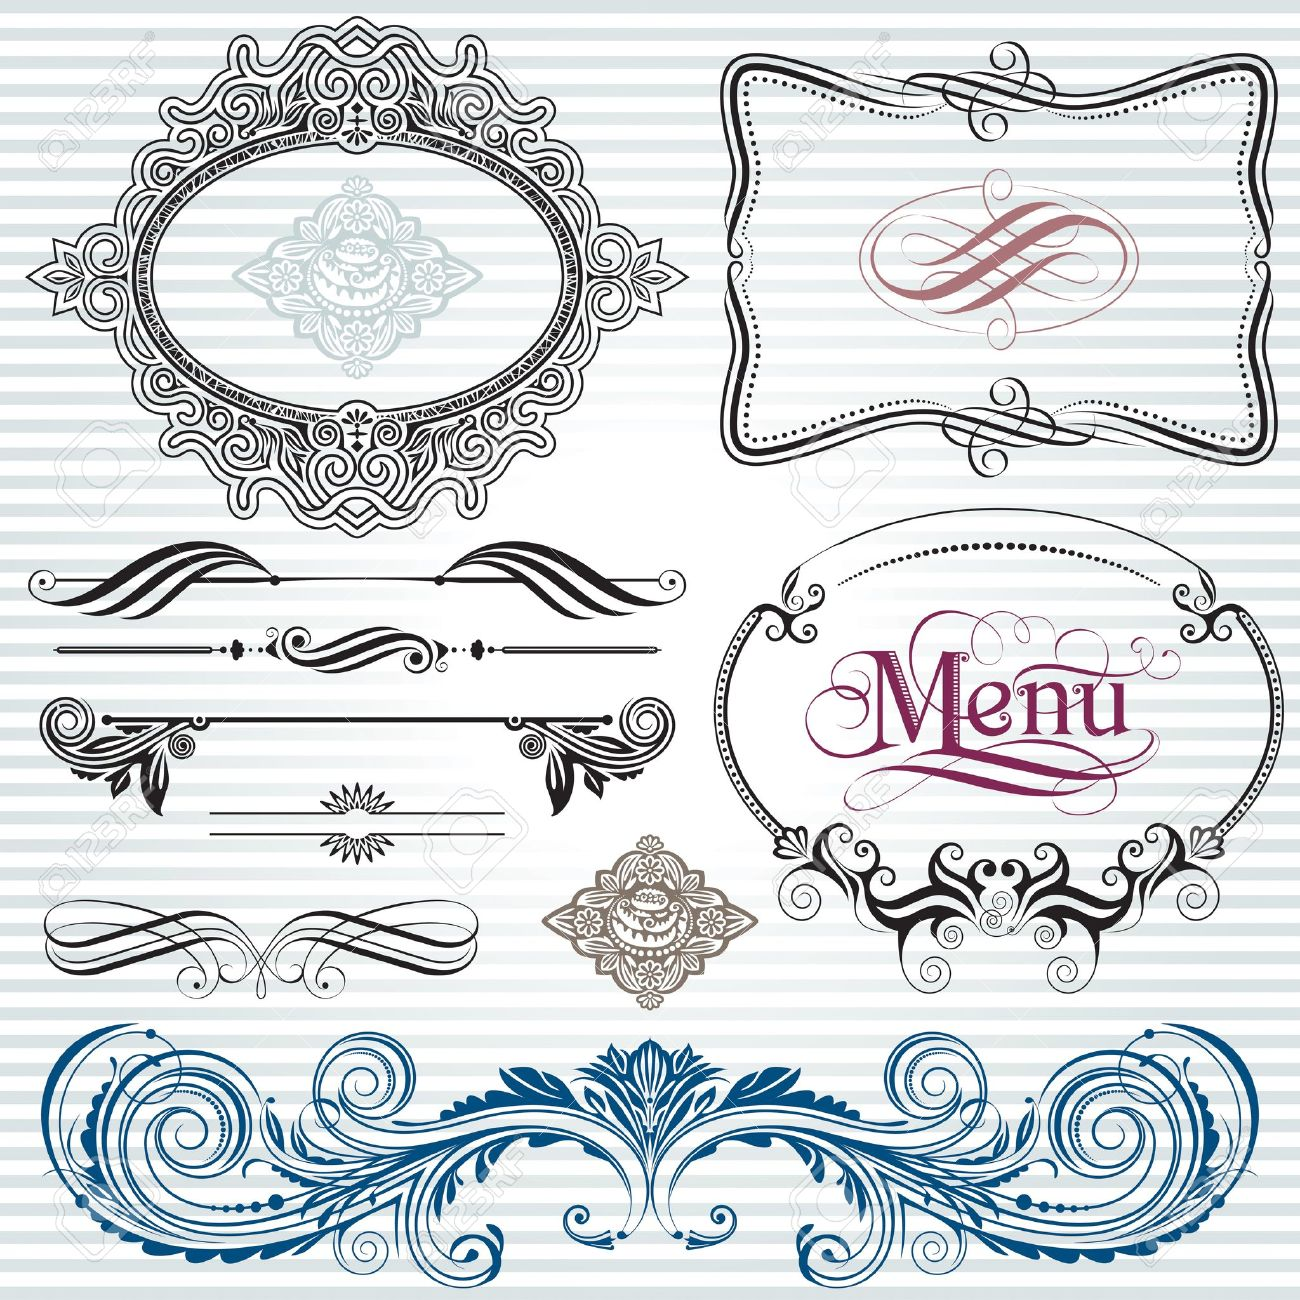 Ornamental and page decoration design elements. Stock Vector - 11405559